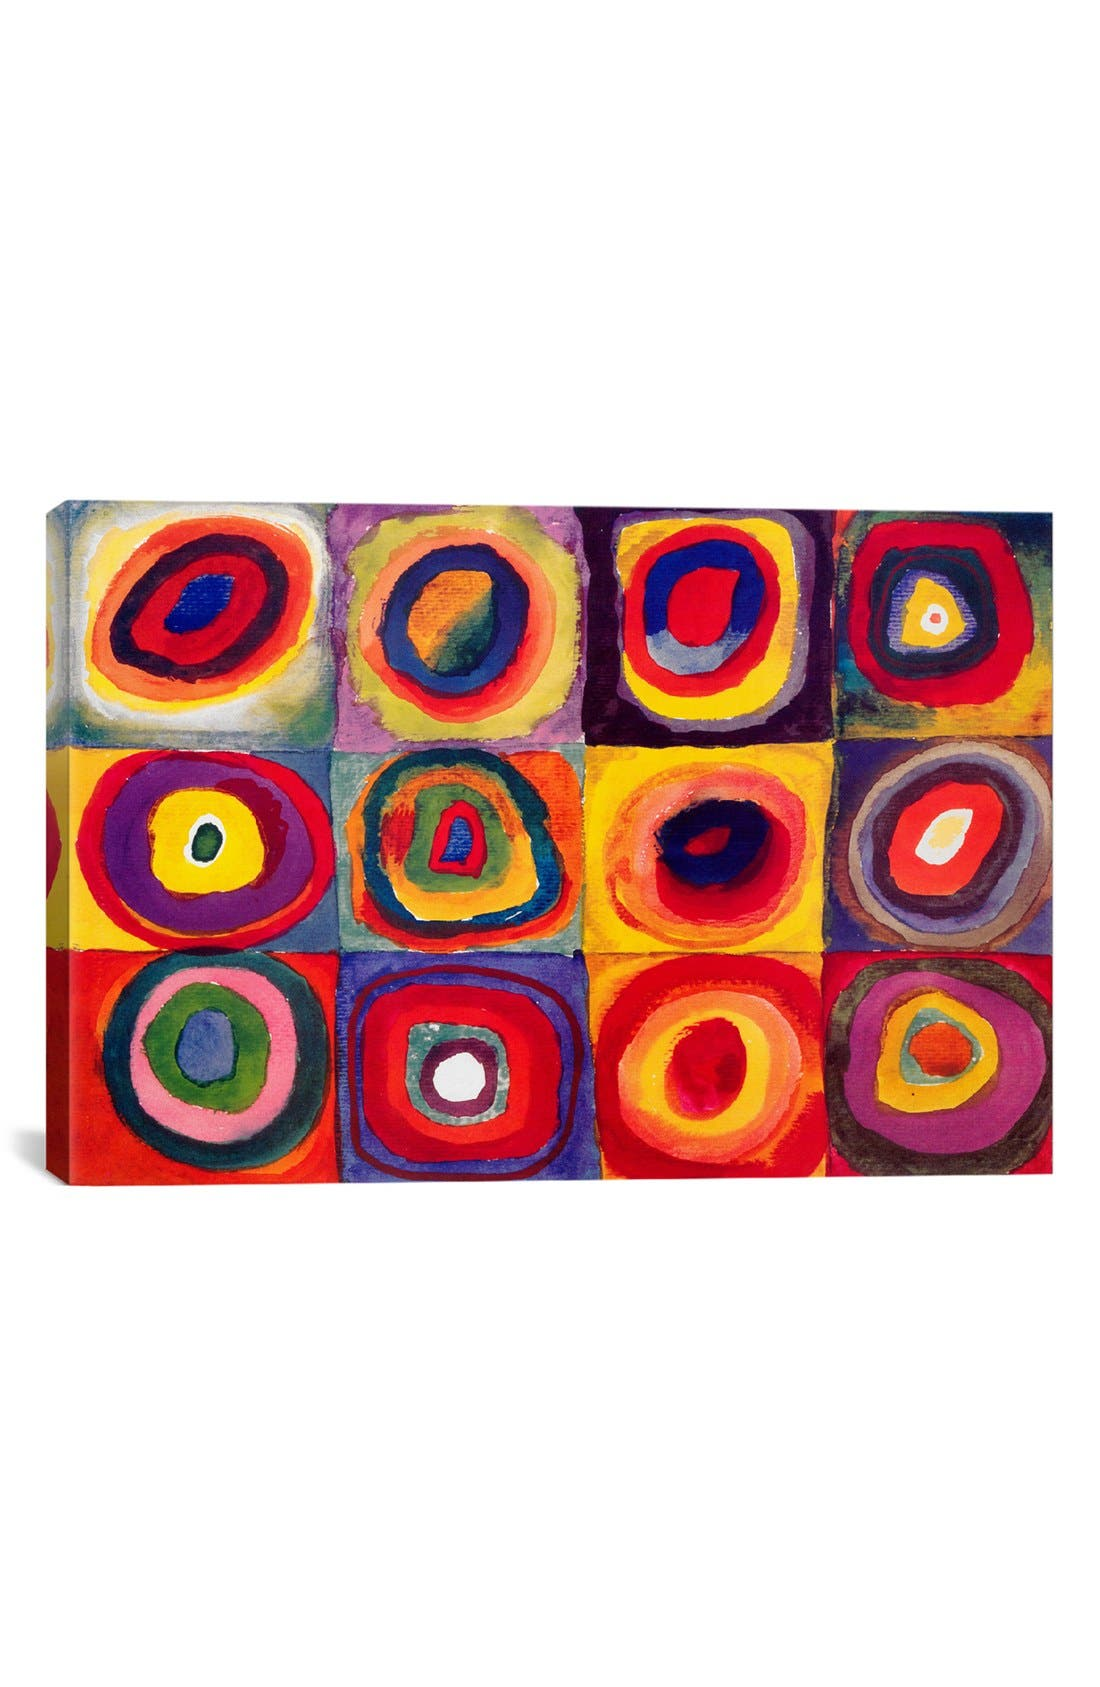 'Squares With Concentric Circles - Wassily Kandinsky' Giclée Print Canvas Art,                         Main,                         color, Red